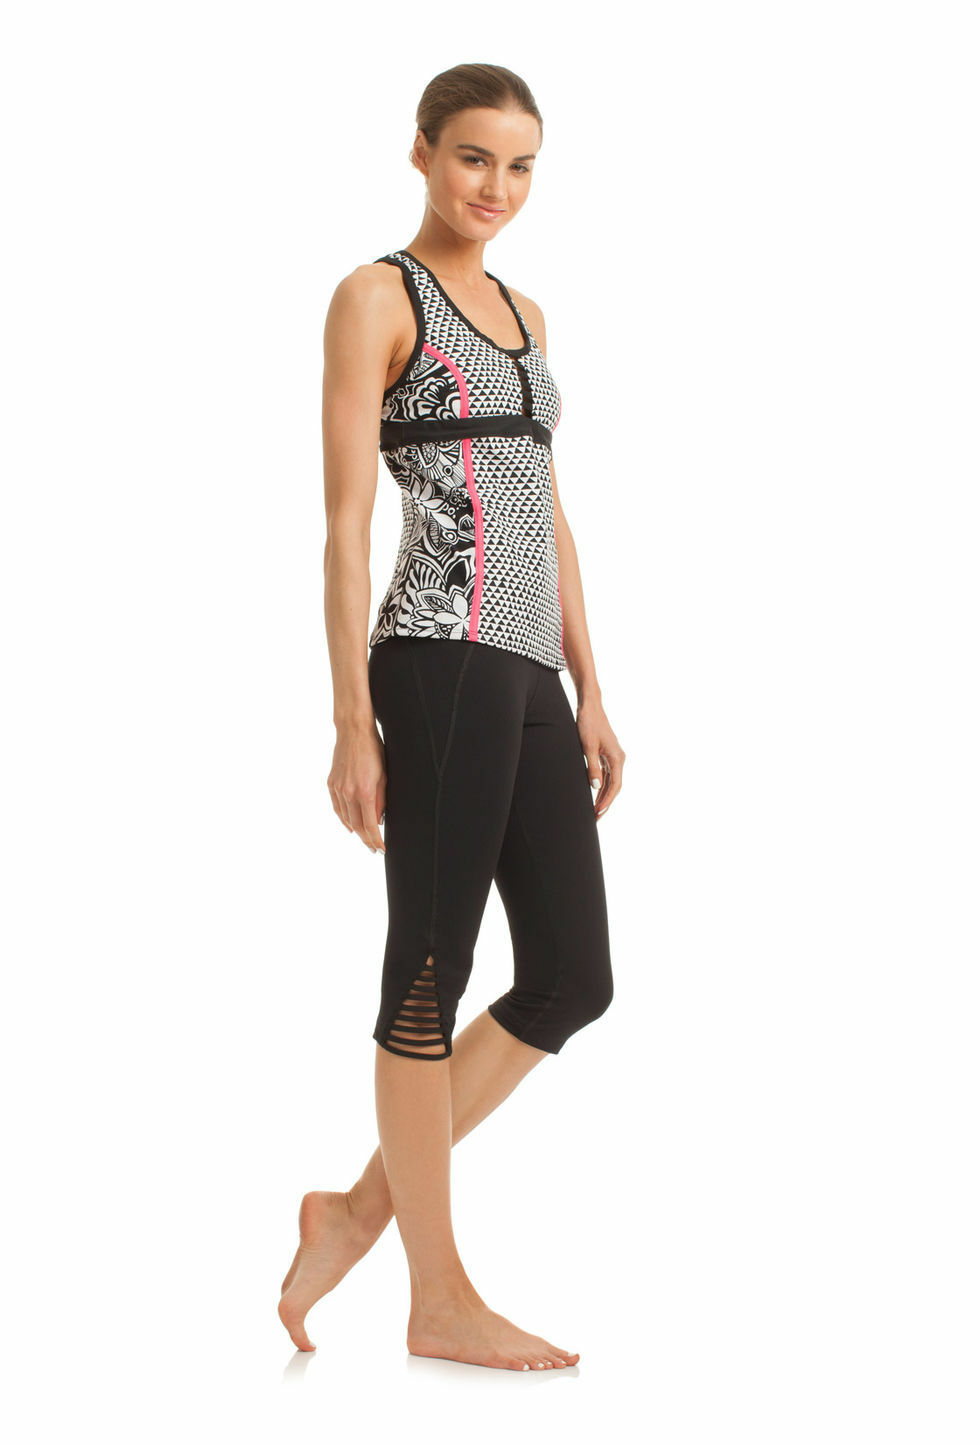 Trina Turk Pop Tropics Workout Tank Recreation Line